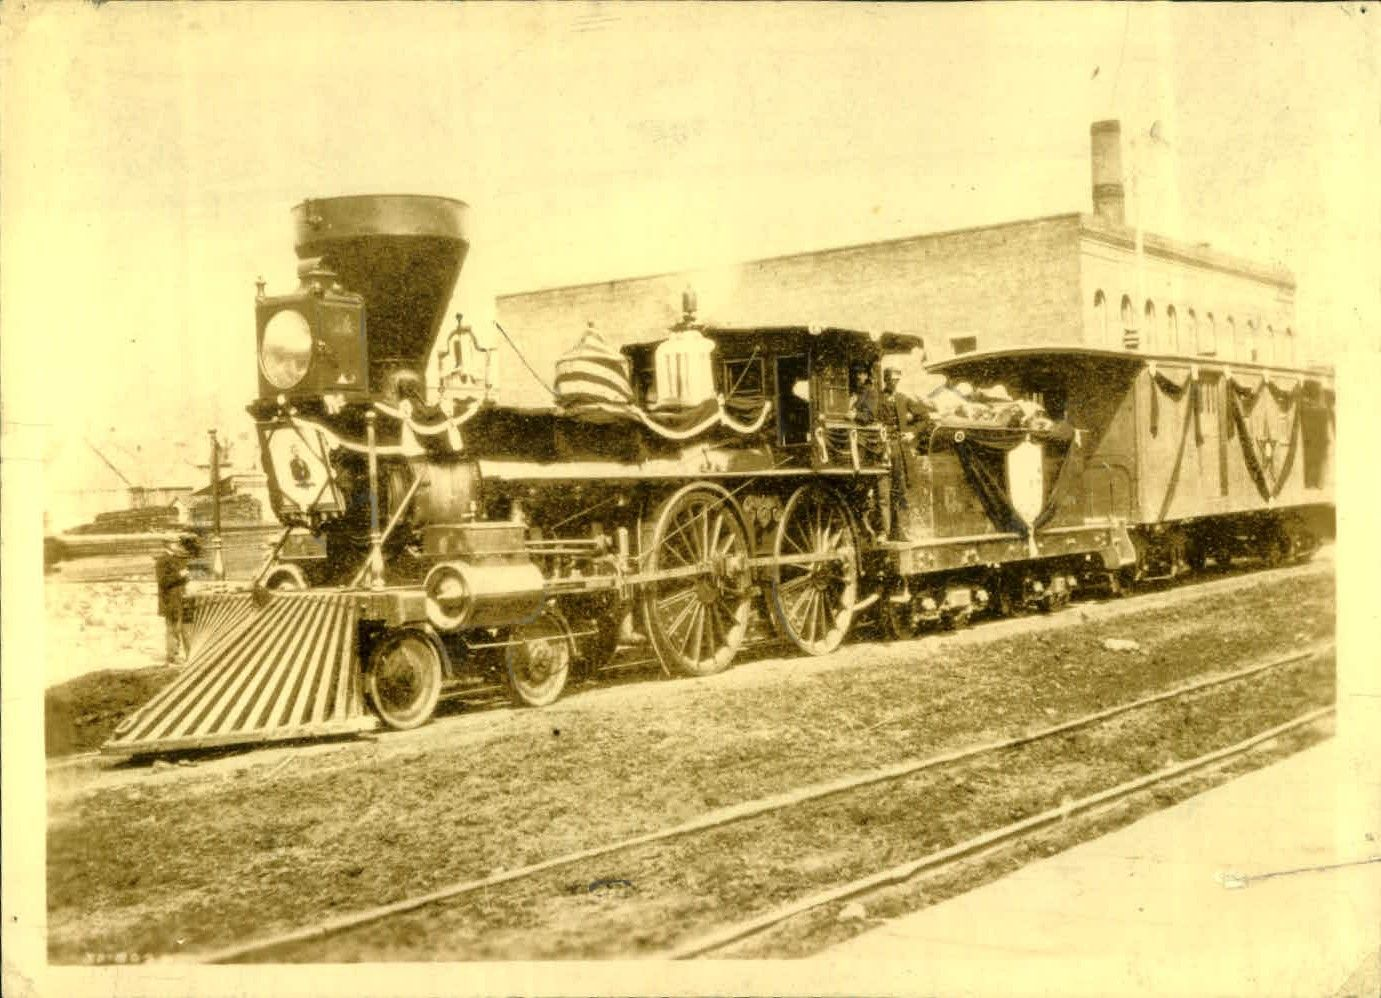 1865 Abraham Lincoln S Funeral Train The Train That Carried Abraham